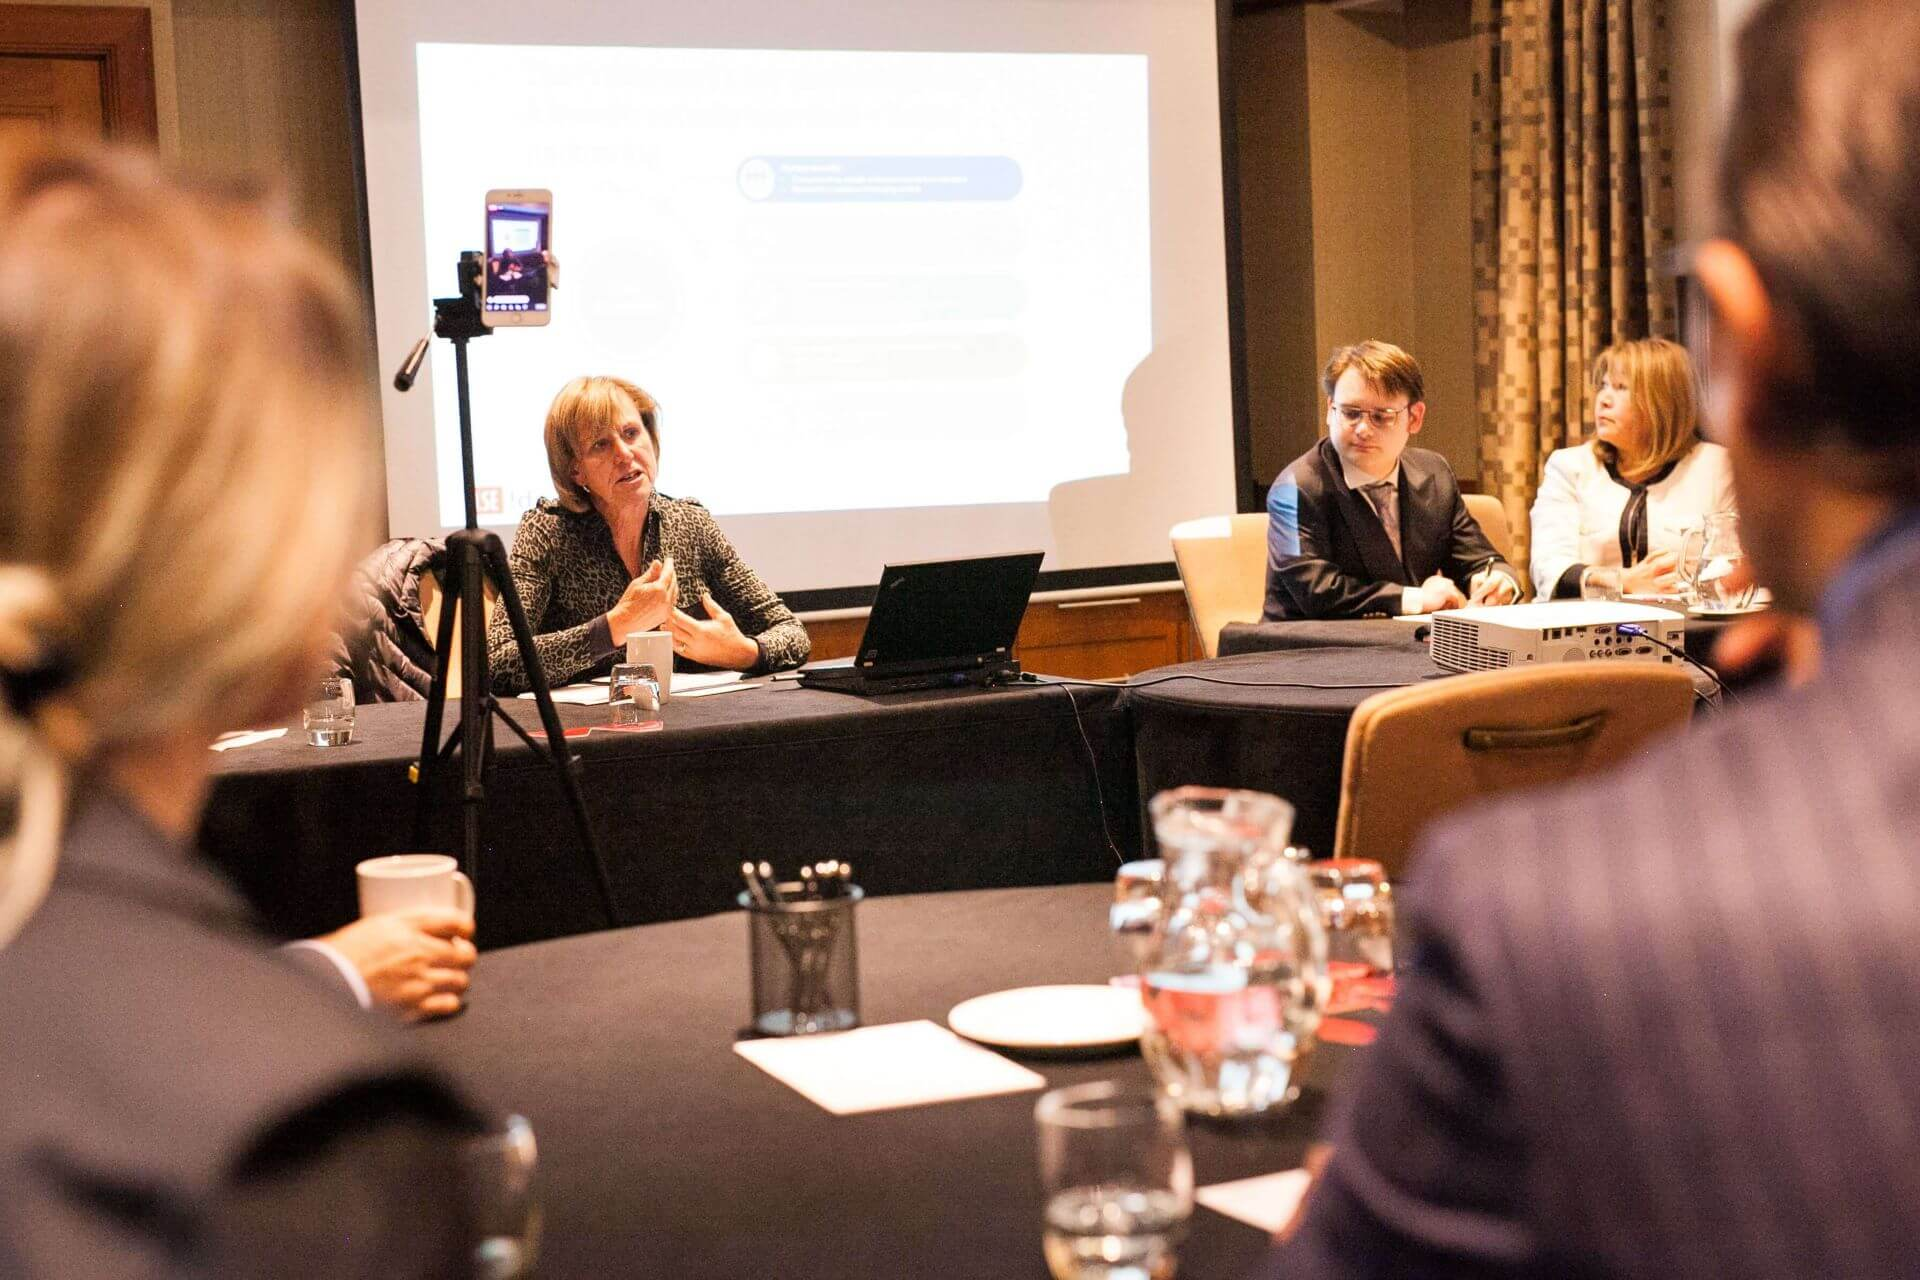 Businesses can contribute to armed conflict—or be part of peacebuilding, concludes ImpACT roundtable